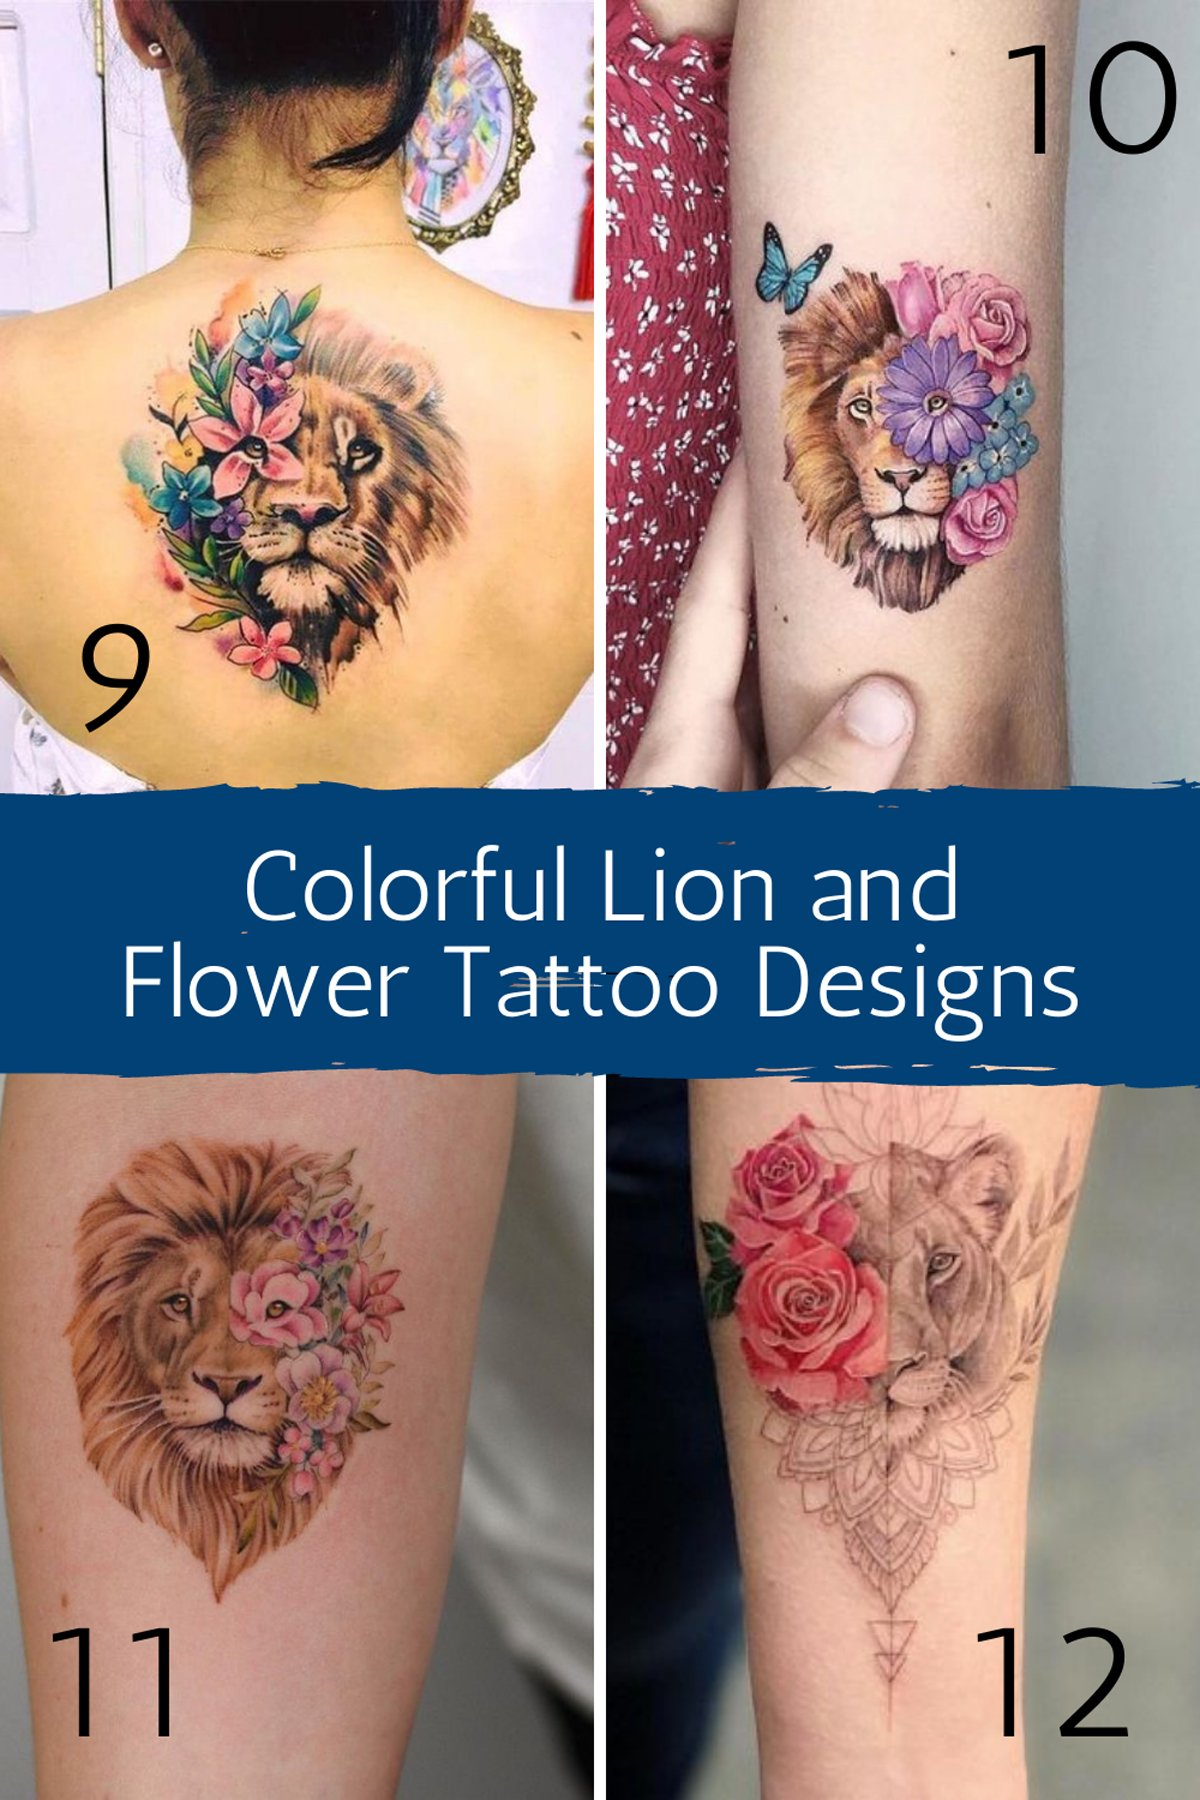 Colorful Lion and Flower Tattoo Designs